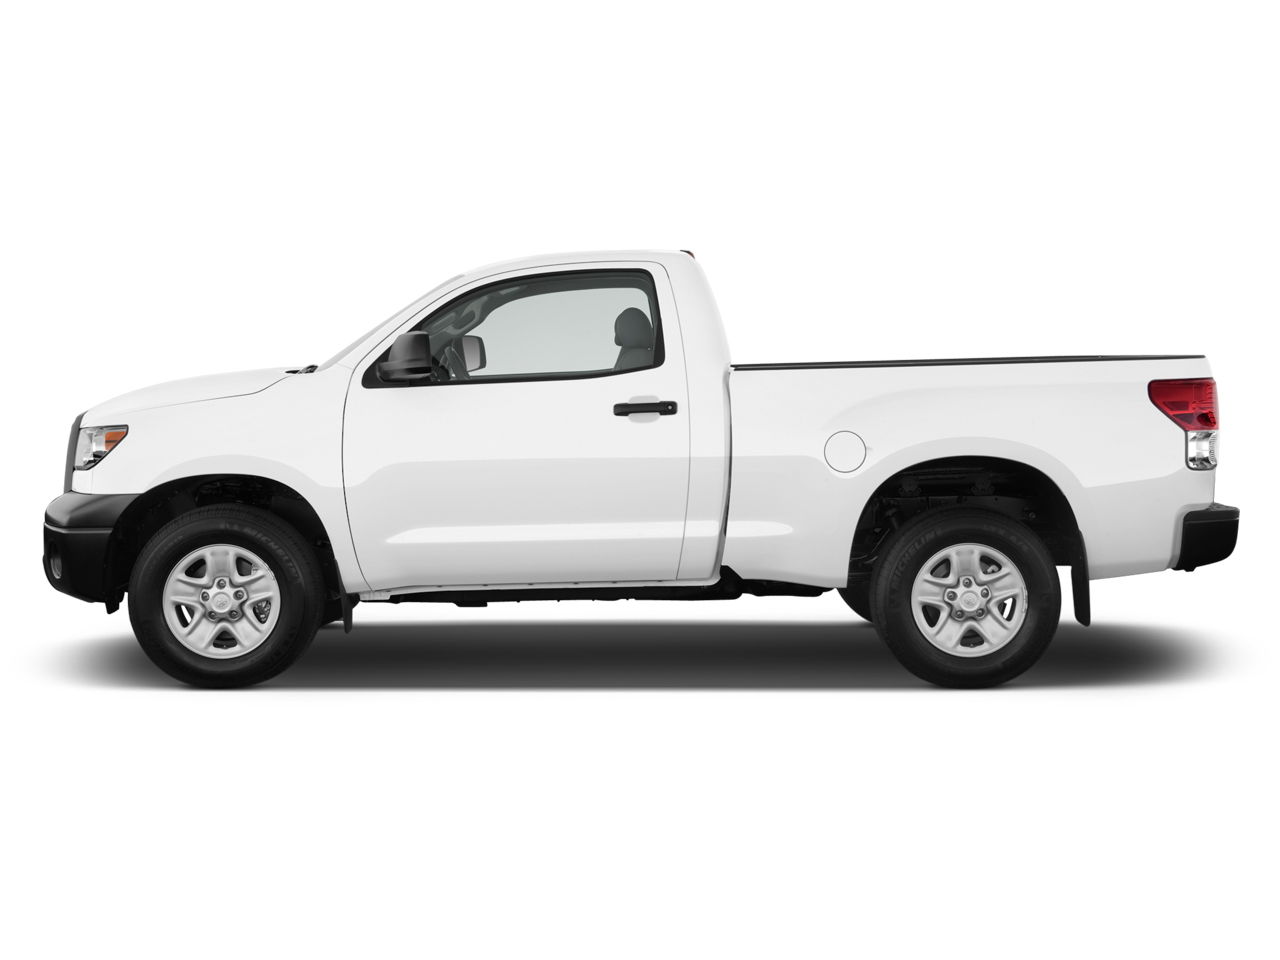 2011 Toyota Tundra Gas Mileage - The Car Connection